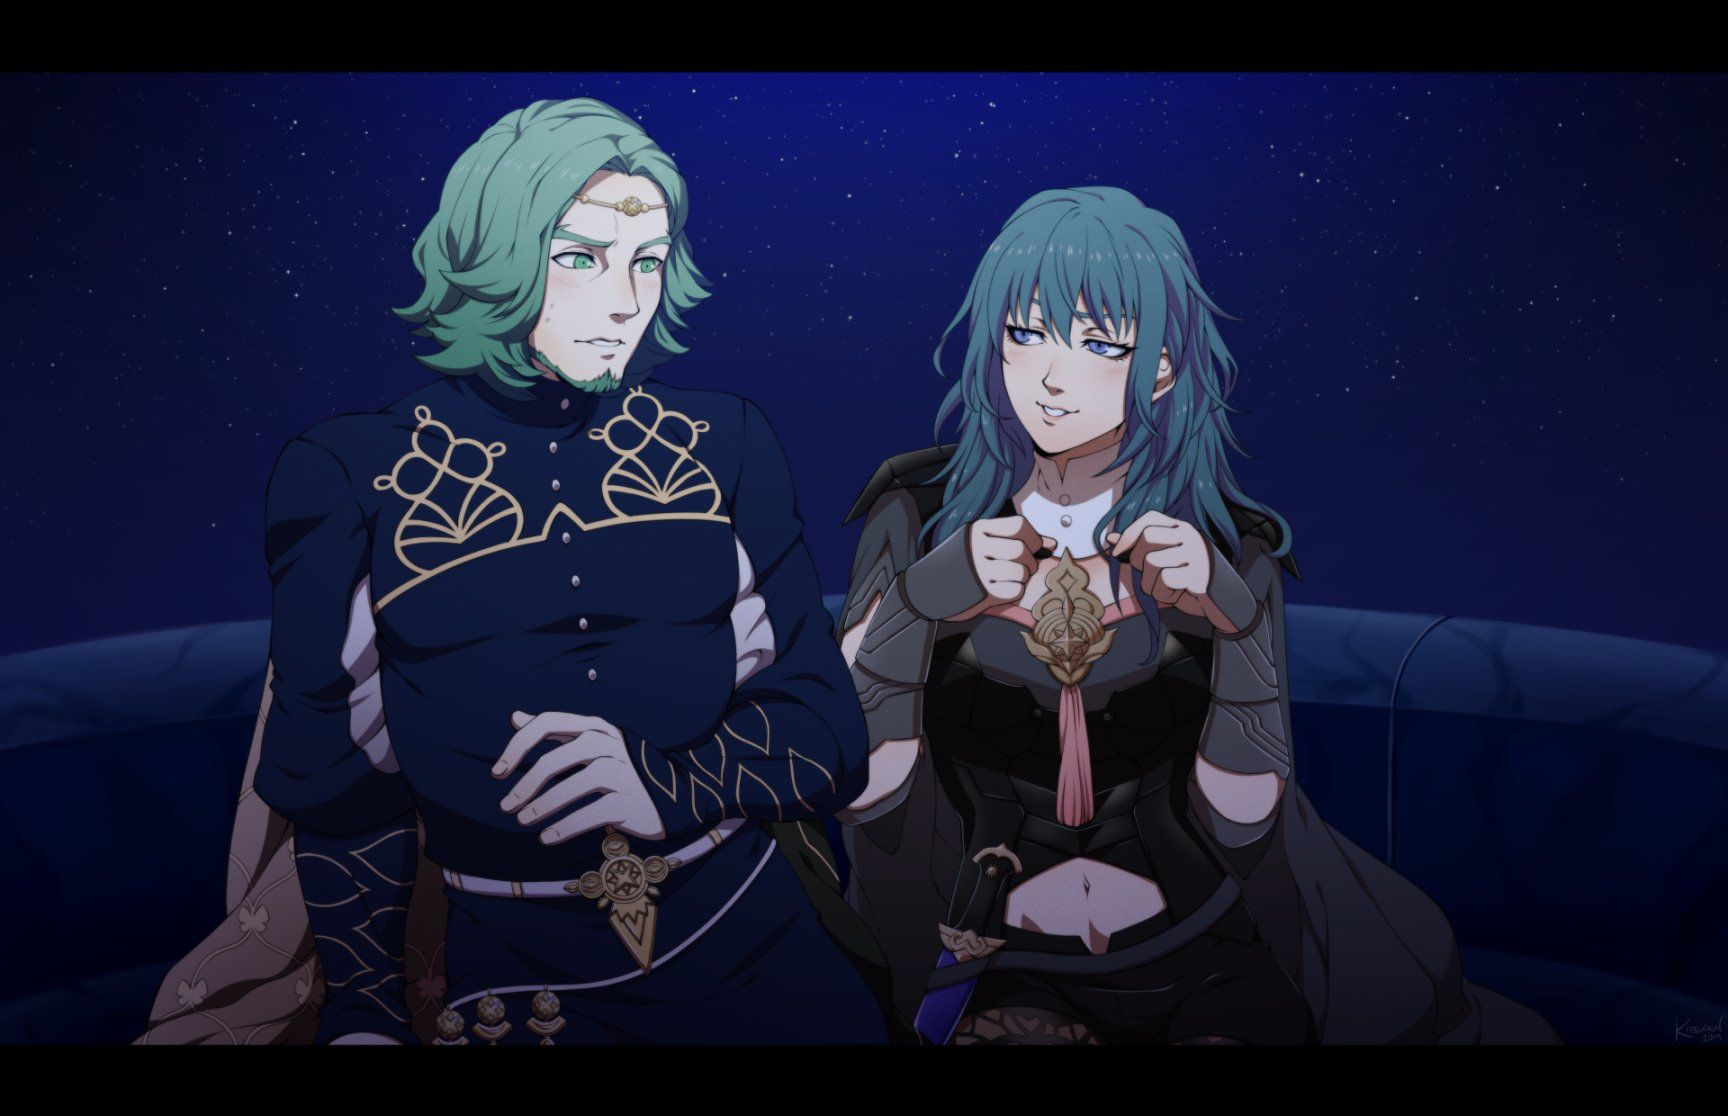 Pin By Crystal On Fire Emblem Three Houses Fire Emblem Characters Fire Emblem Fates Fire Emblem